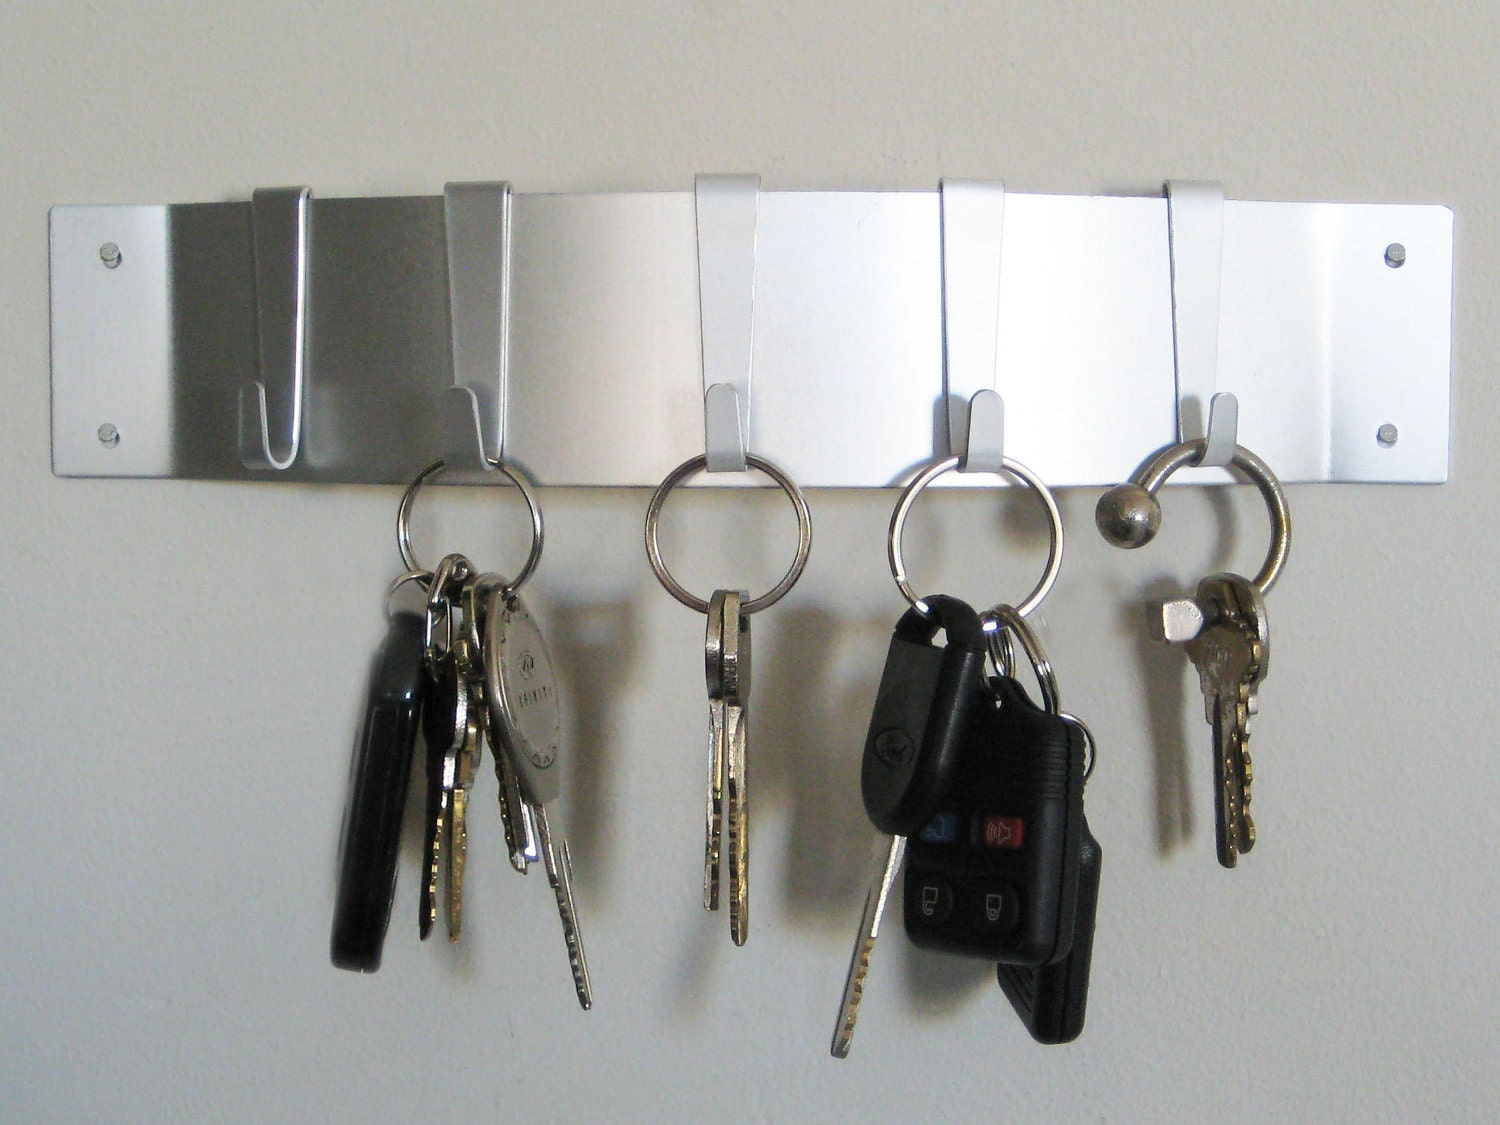 Uncategorized Key Holder For The Wall curved wall key holder